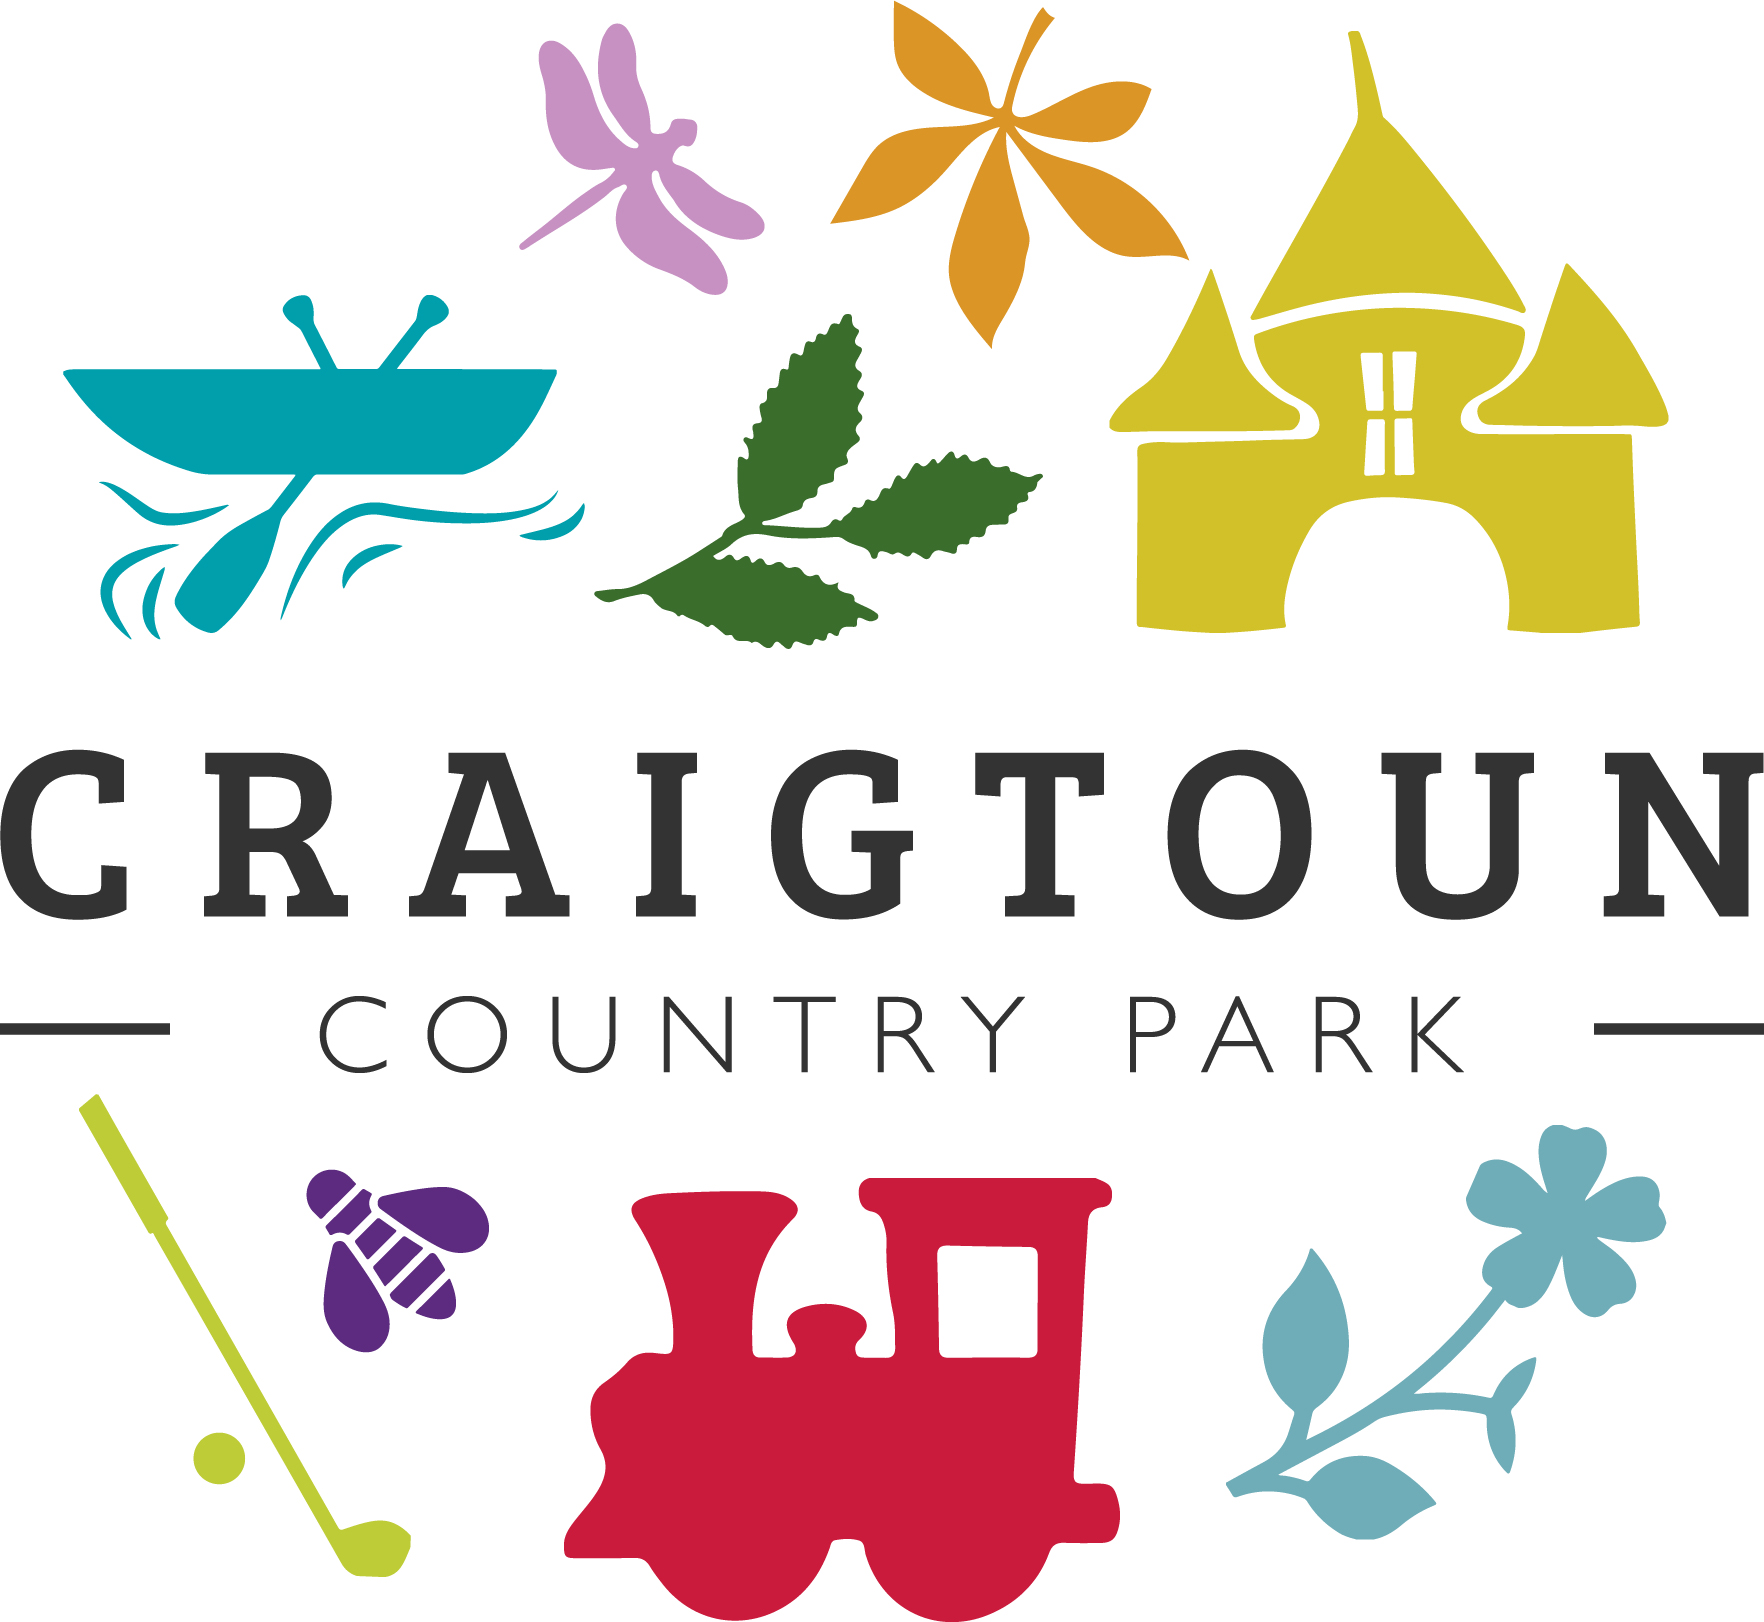 Craigtoun Country Park